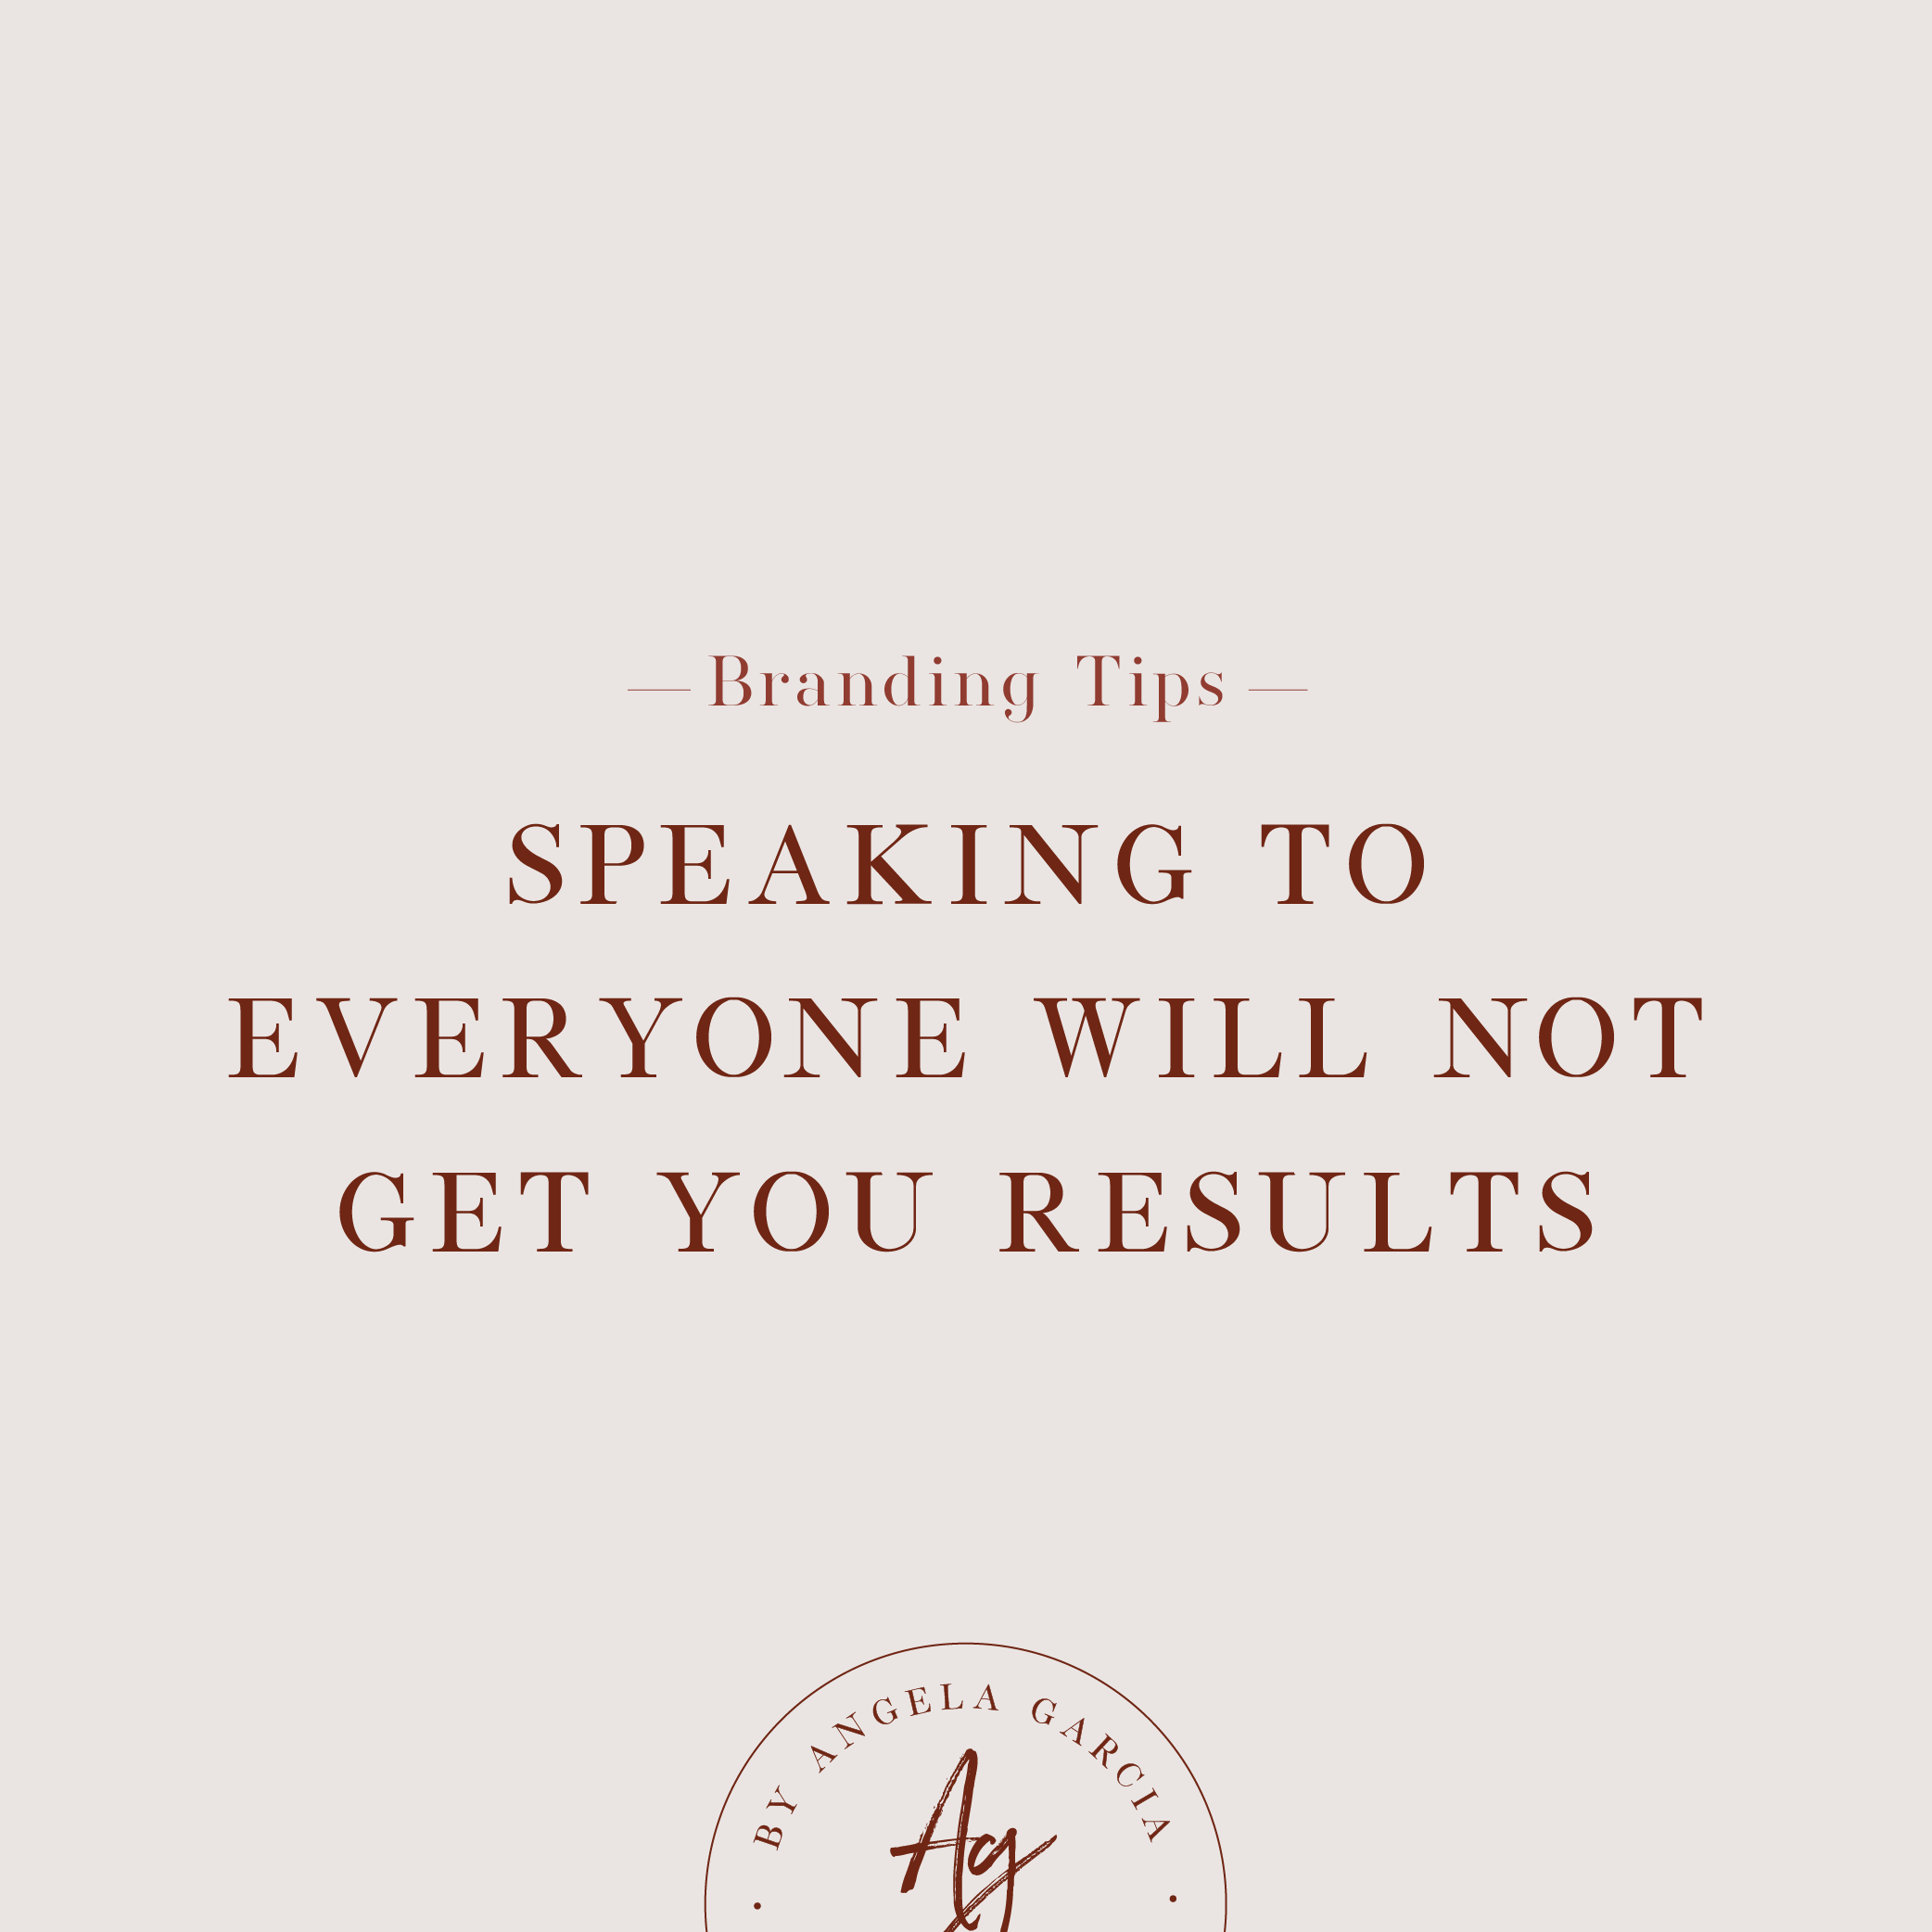 Speaking to everyone will not get you results